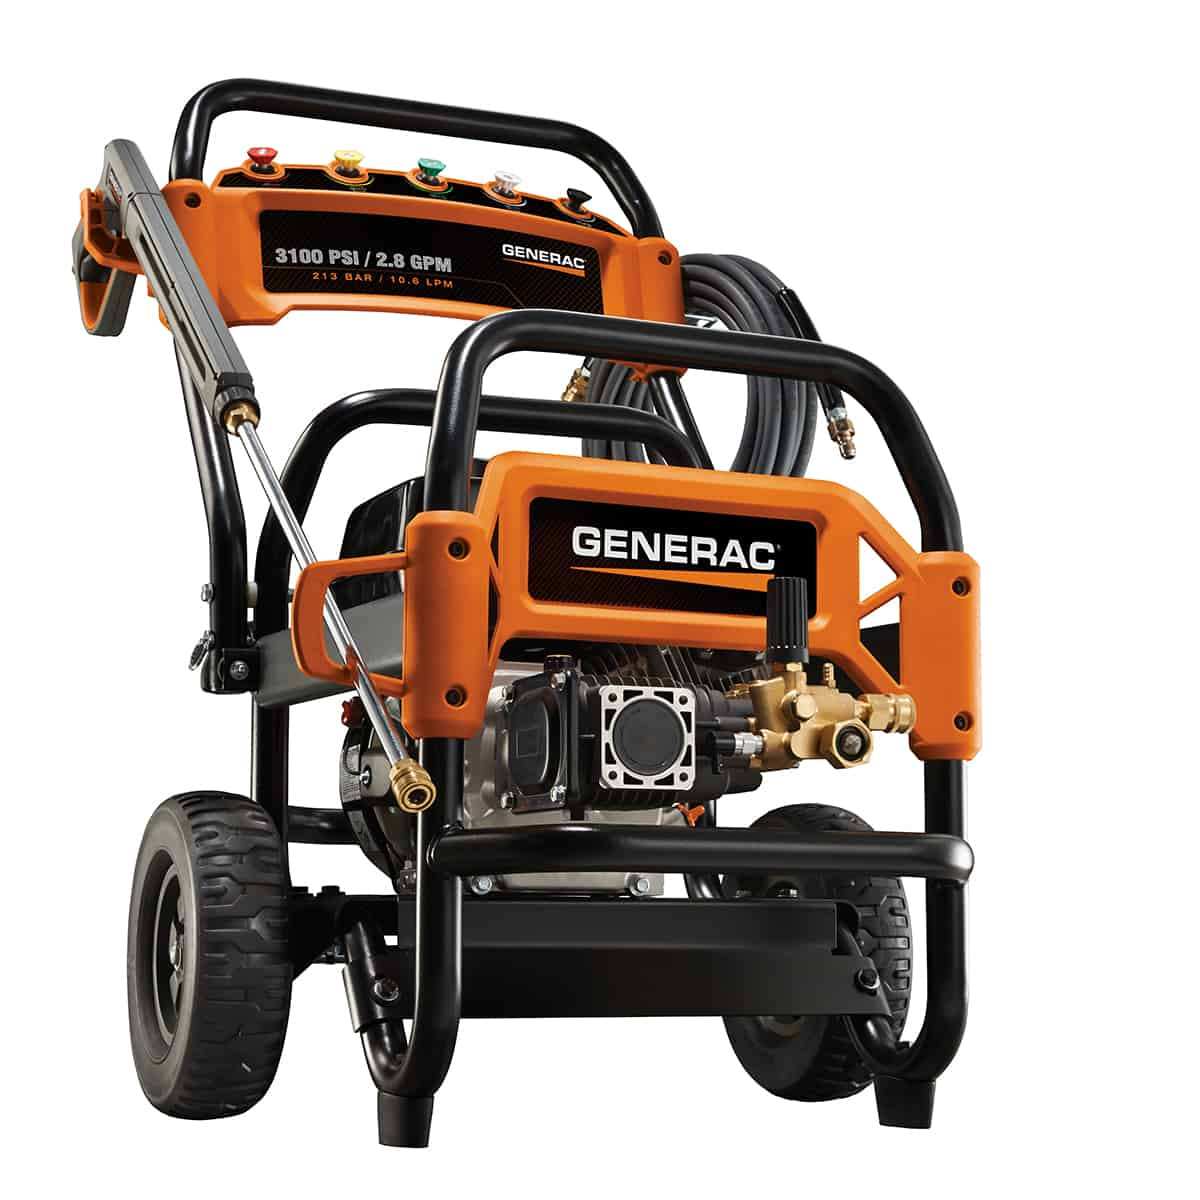 Generac 3100 PSI Commercial Power Washer 6590